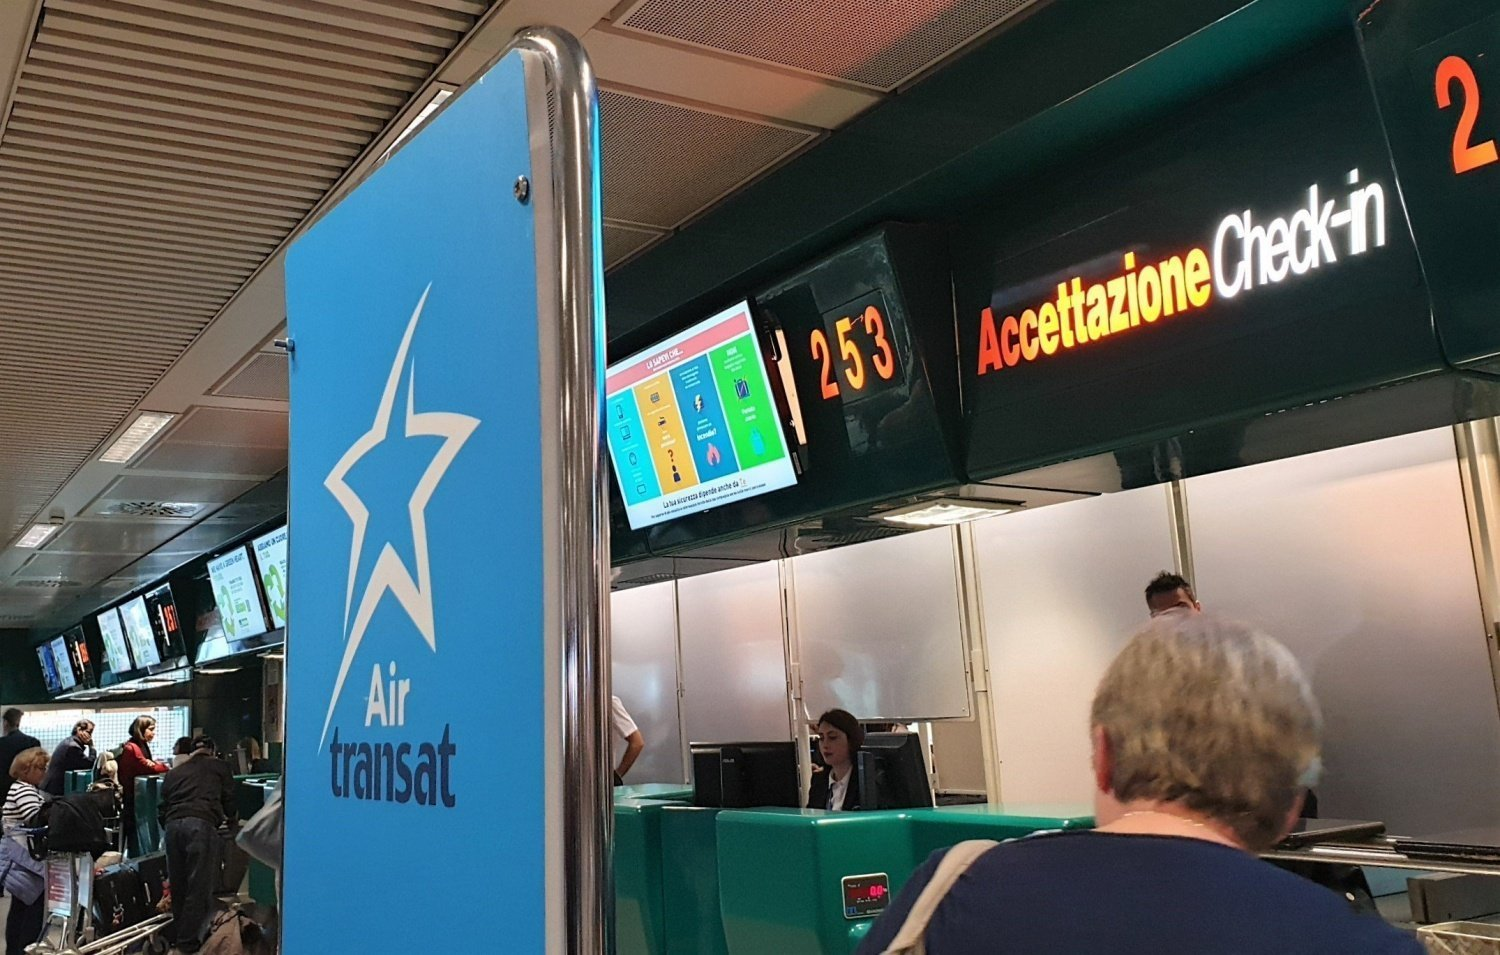 Check in Air Transat